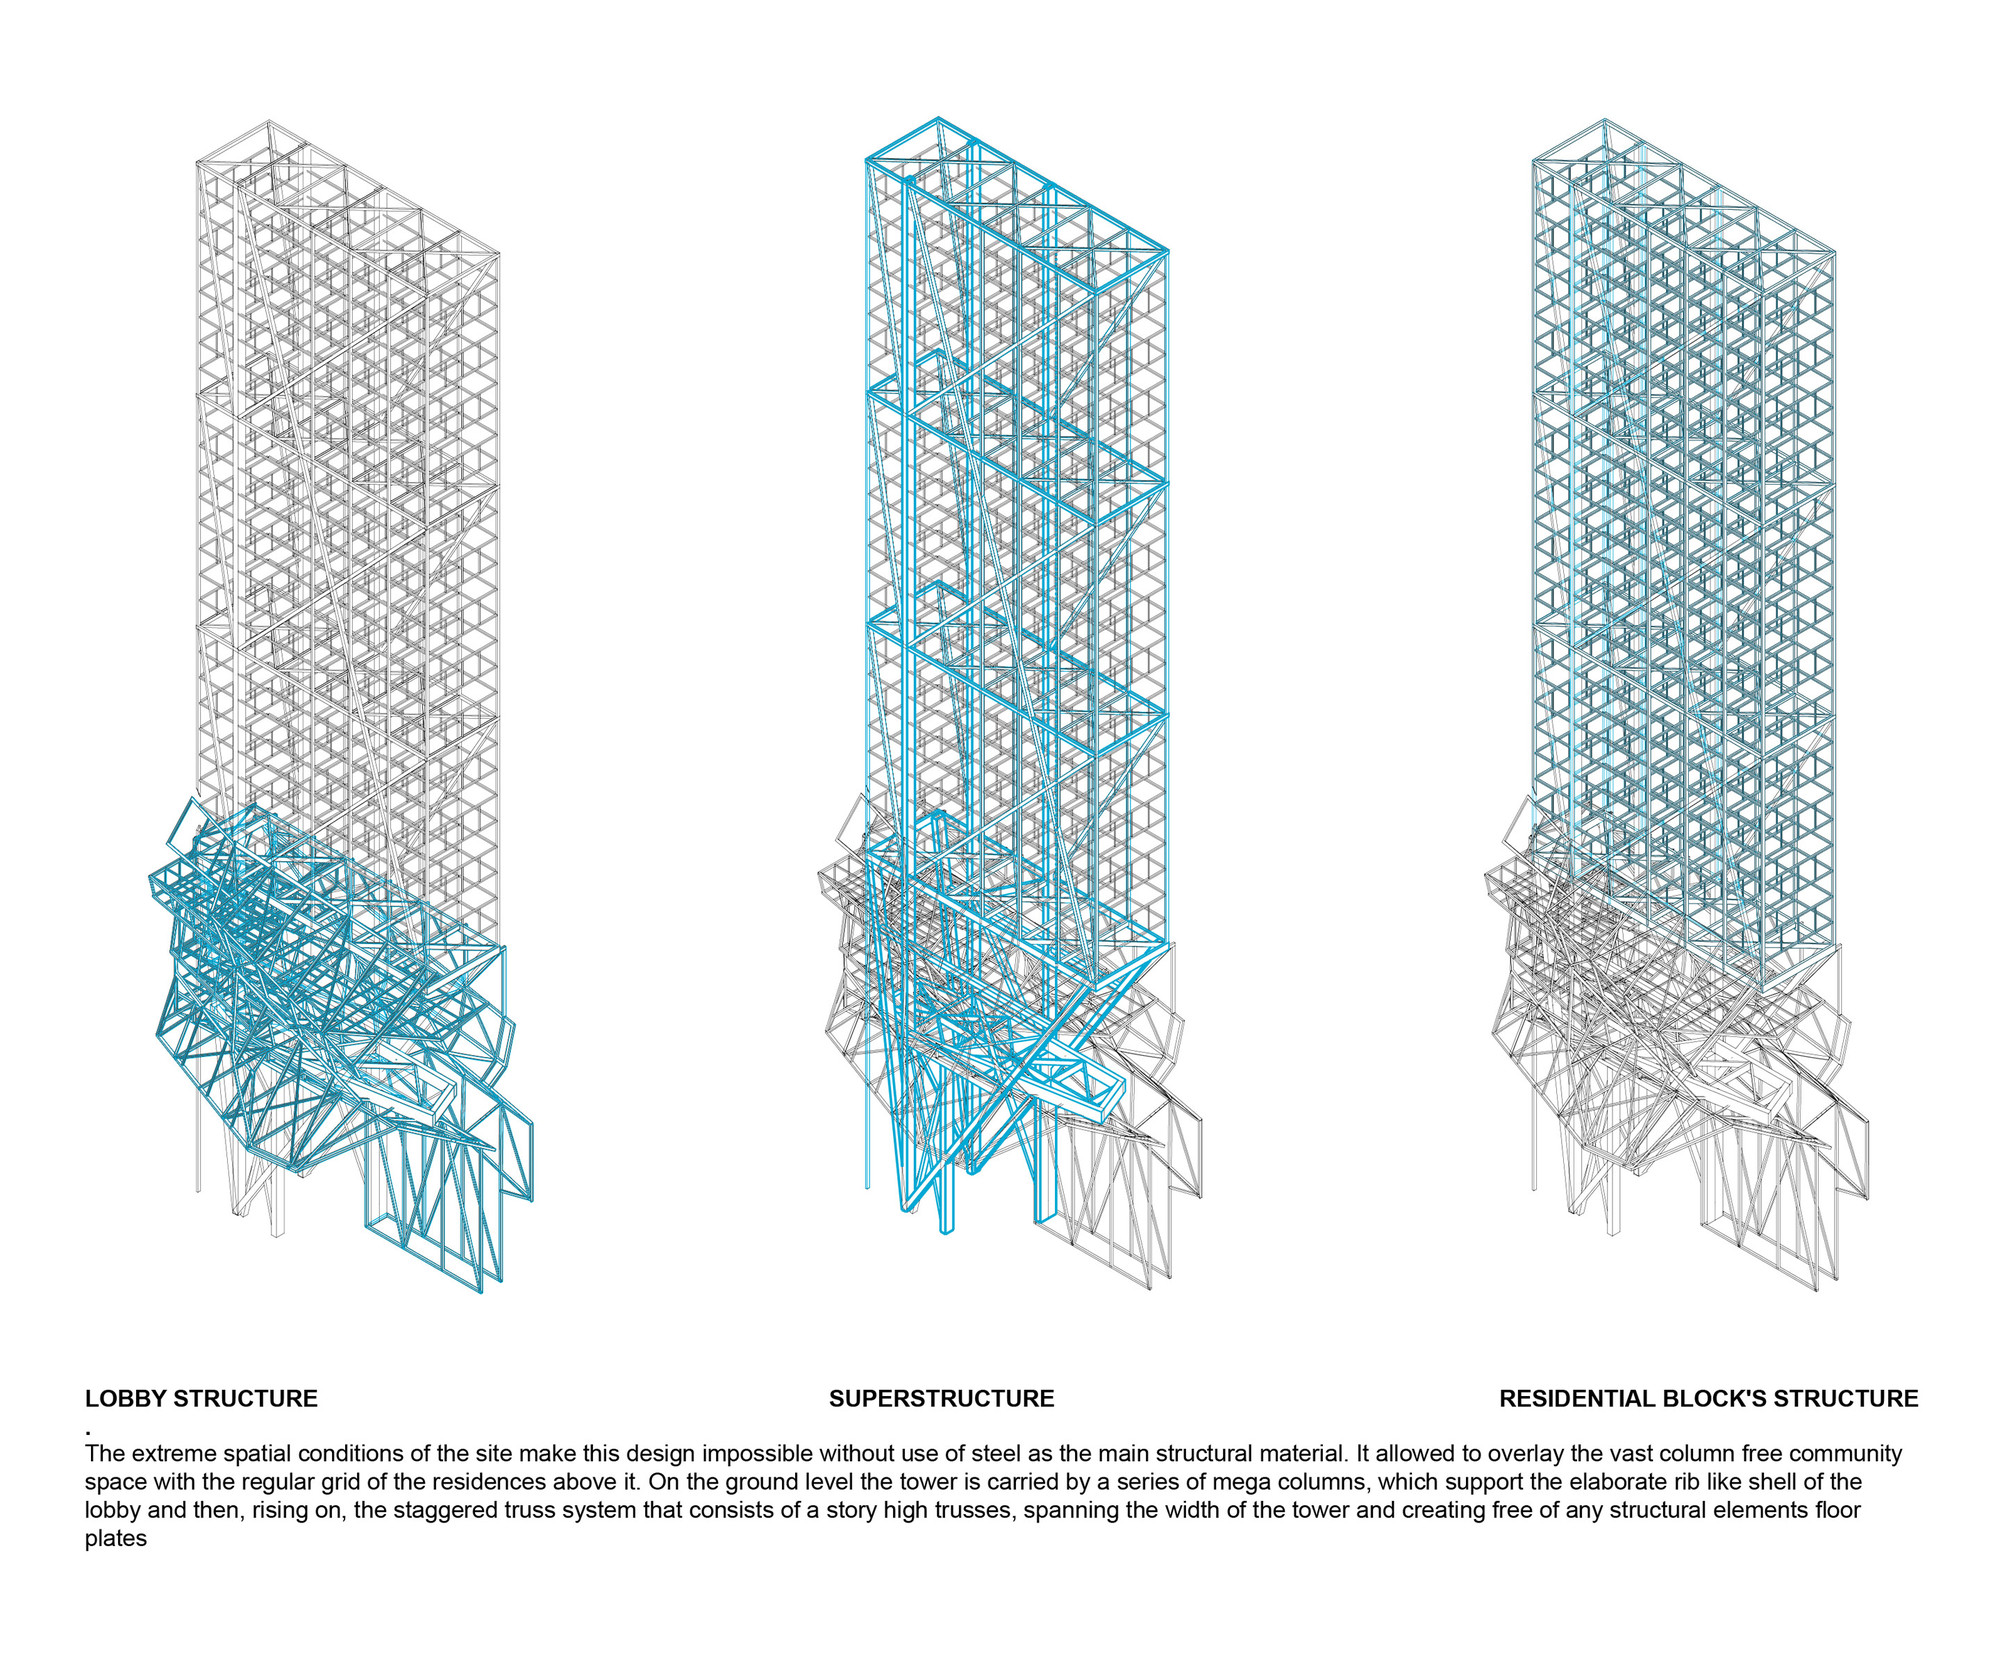 Proposal for New York Skyscraper Cantilevers Lobby Over Its ...